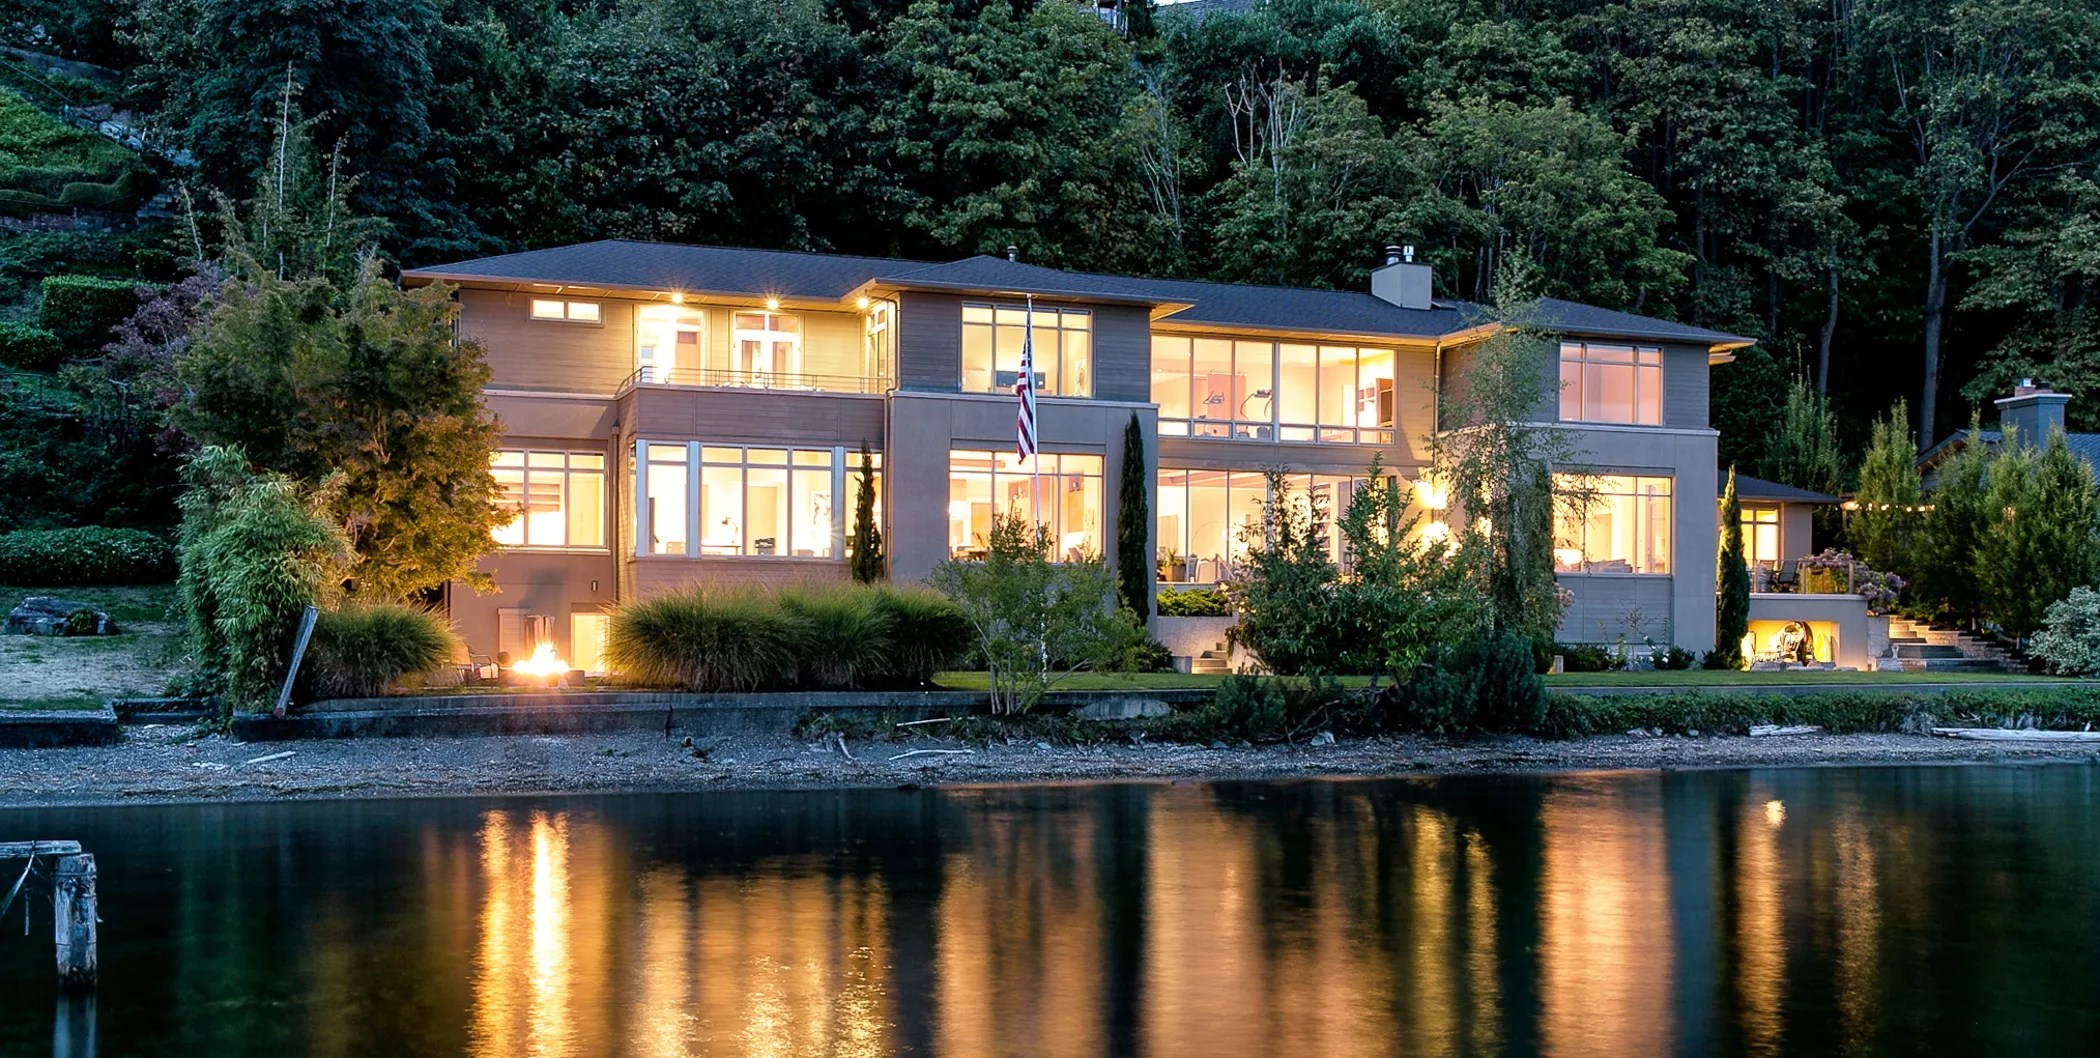 Large Living Room Windows Most Expensive House In Seattle Listed For $13.25 Million